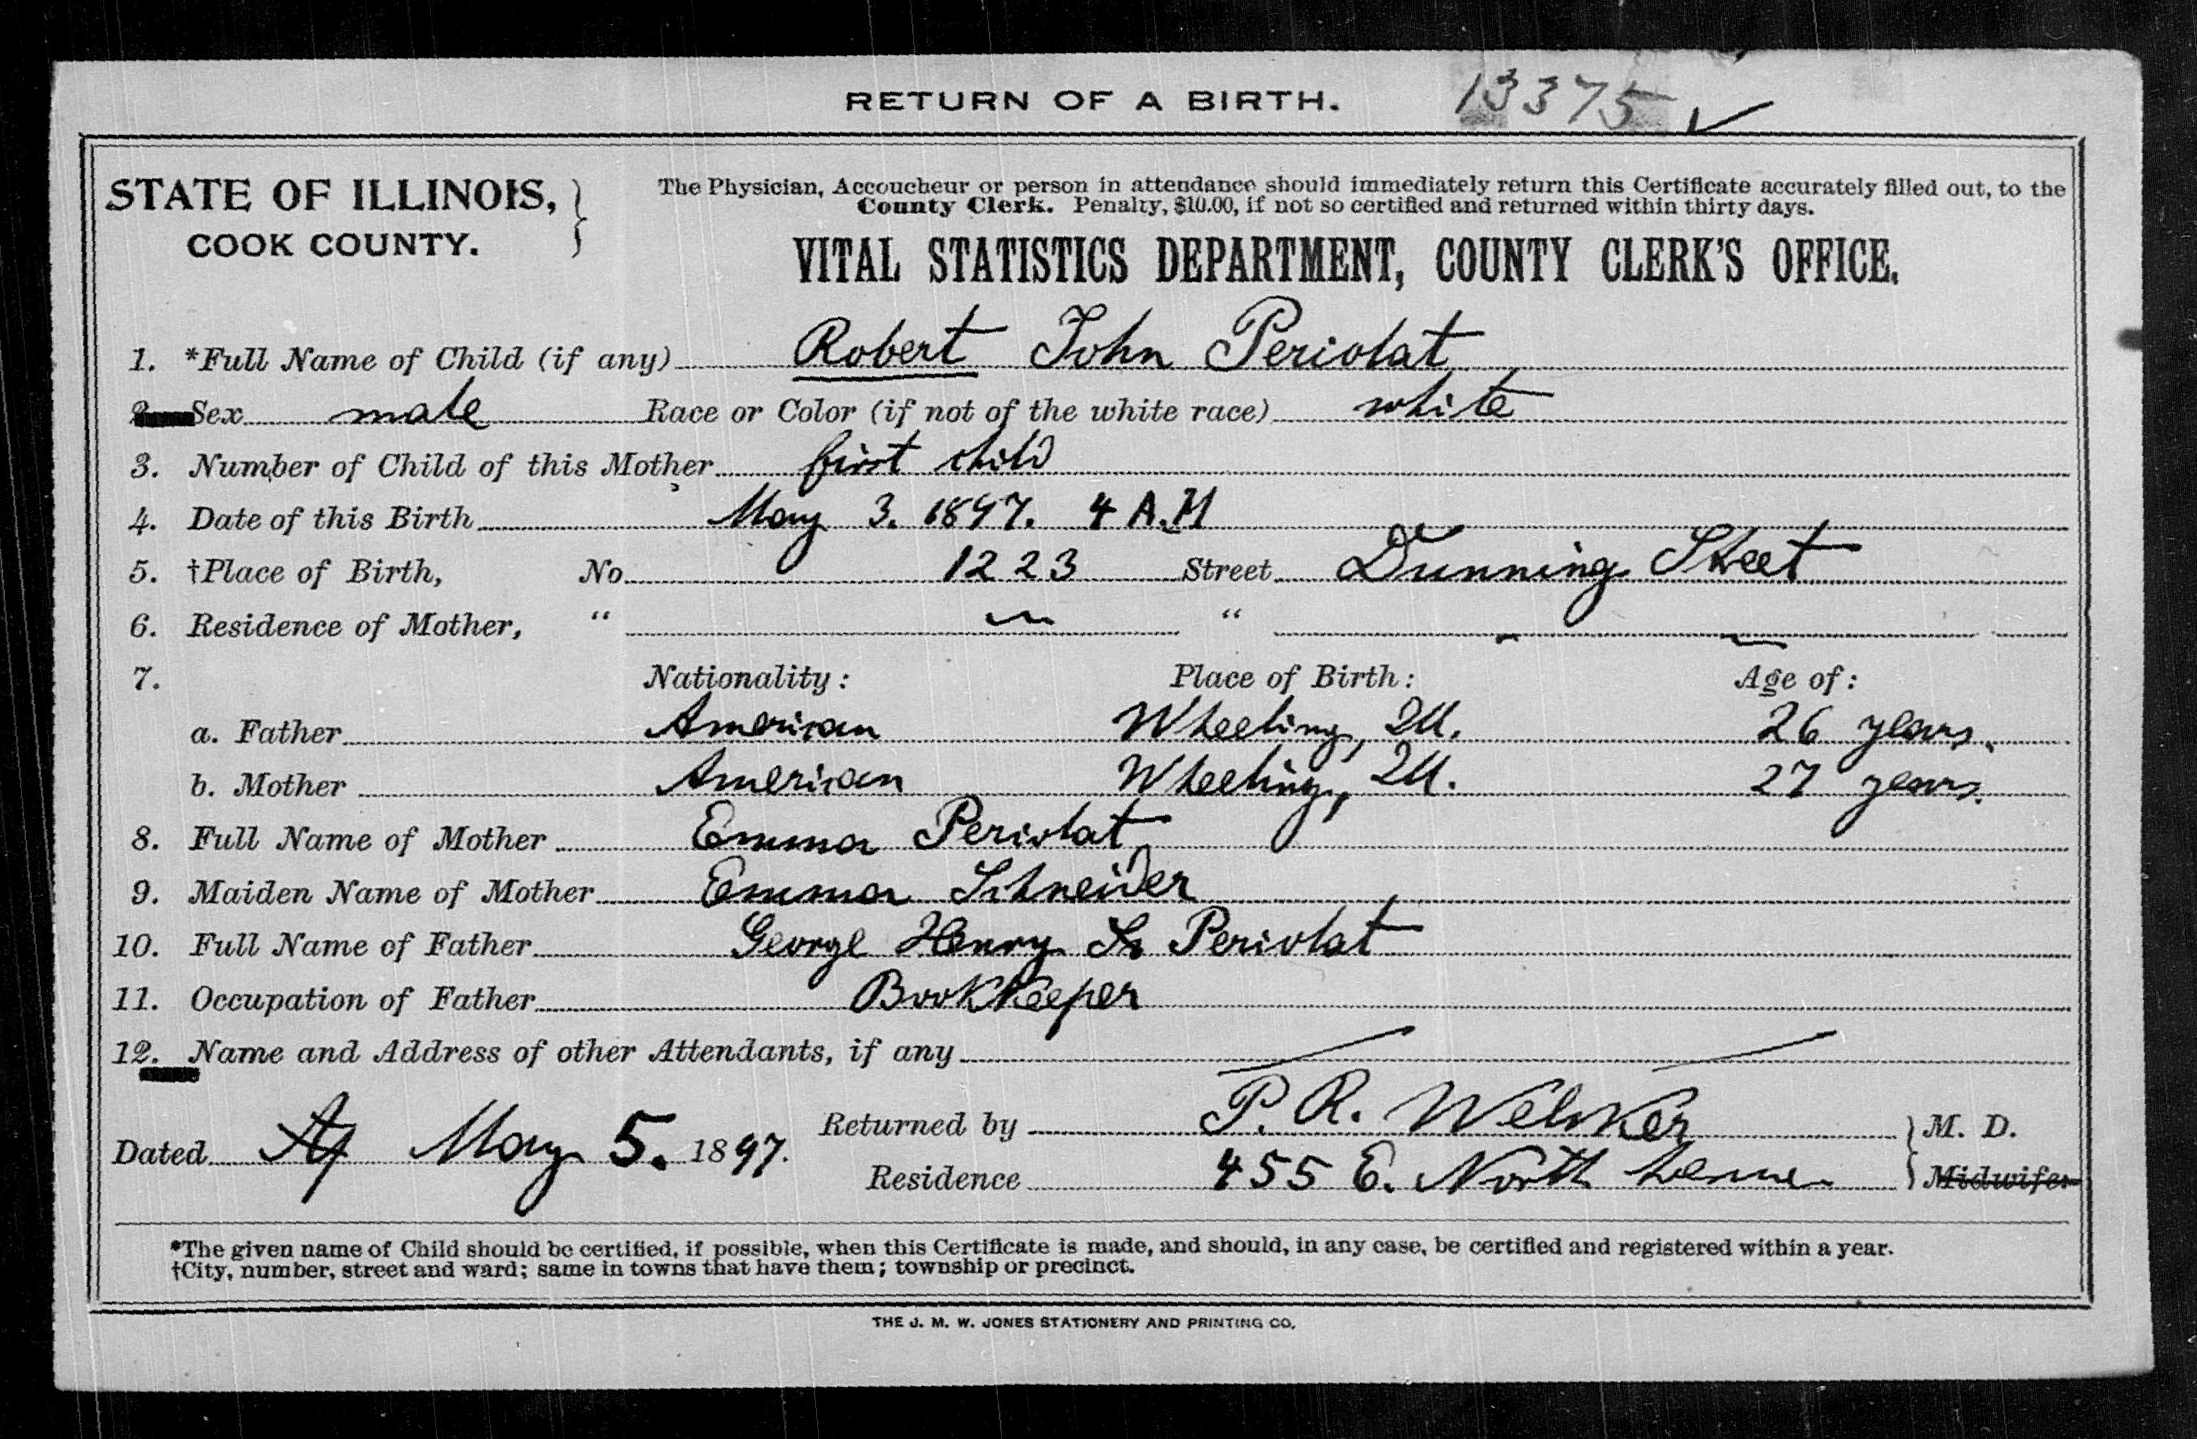 certificate birth illinois county cook john robert 1897 certificates 1922 1878 familysearch database record